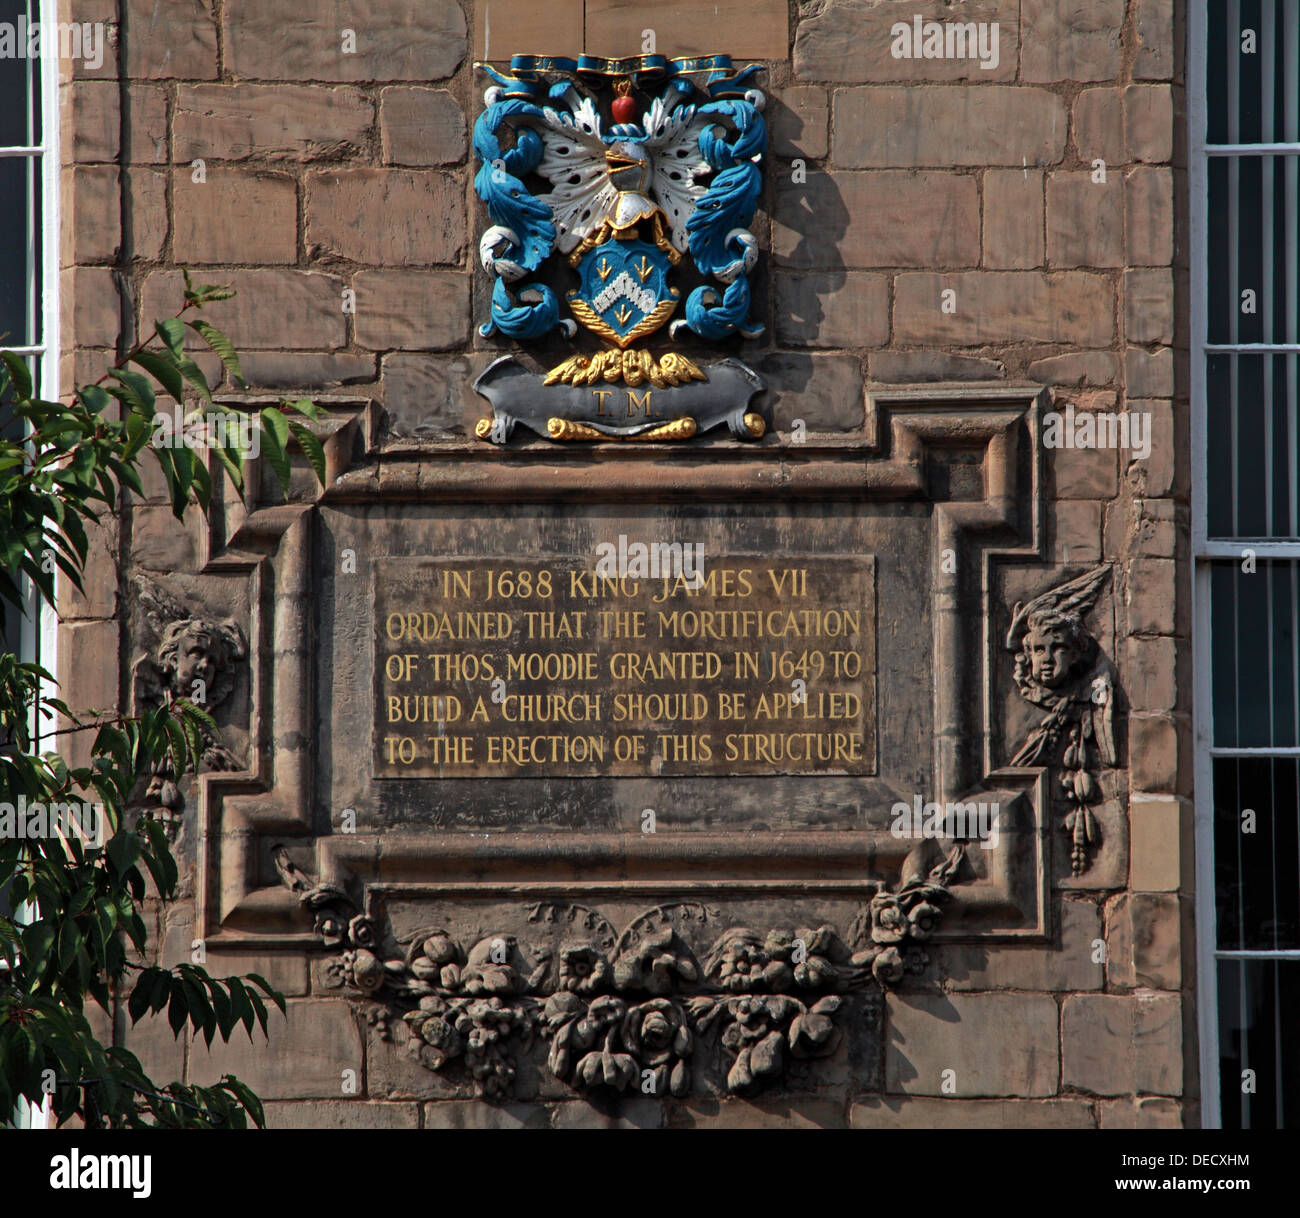 EH8,8BN,EH88BN,outside,historic,tourist,travel,building,architecture,kirkyard,churchyard,yard,Canon,gate,of,old,town,oldtown,parish,castle,cots,Scottish,scotch,burgh,city,Dutch-style,end,gable,worship,services,Sunday,anglican,religion,religion,Christianity,royal,gotonysmith,Palace,of,Holyroodhouse,Holyrood,capital,Dutch,style,small,doric-columned,portico,over,the,entrance,doric,column,columned,Regiment,of,the,British,Army,chapel,inscription,reads,read,in,1688,king,james,VII,ordained,that,the,mortification,of,oldtown,Thos.,Moodie,granted,in,1649,to,build,a,church,should,be,applied,to,the,erection,of,this,structure,Buy Pictures of,Buy Images Of